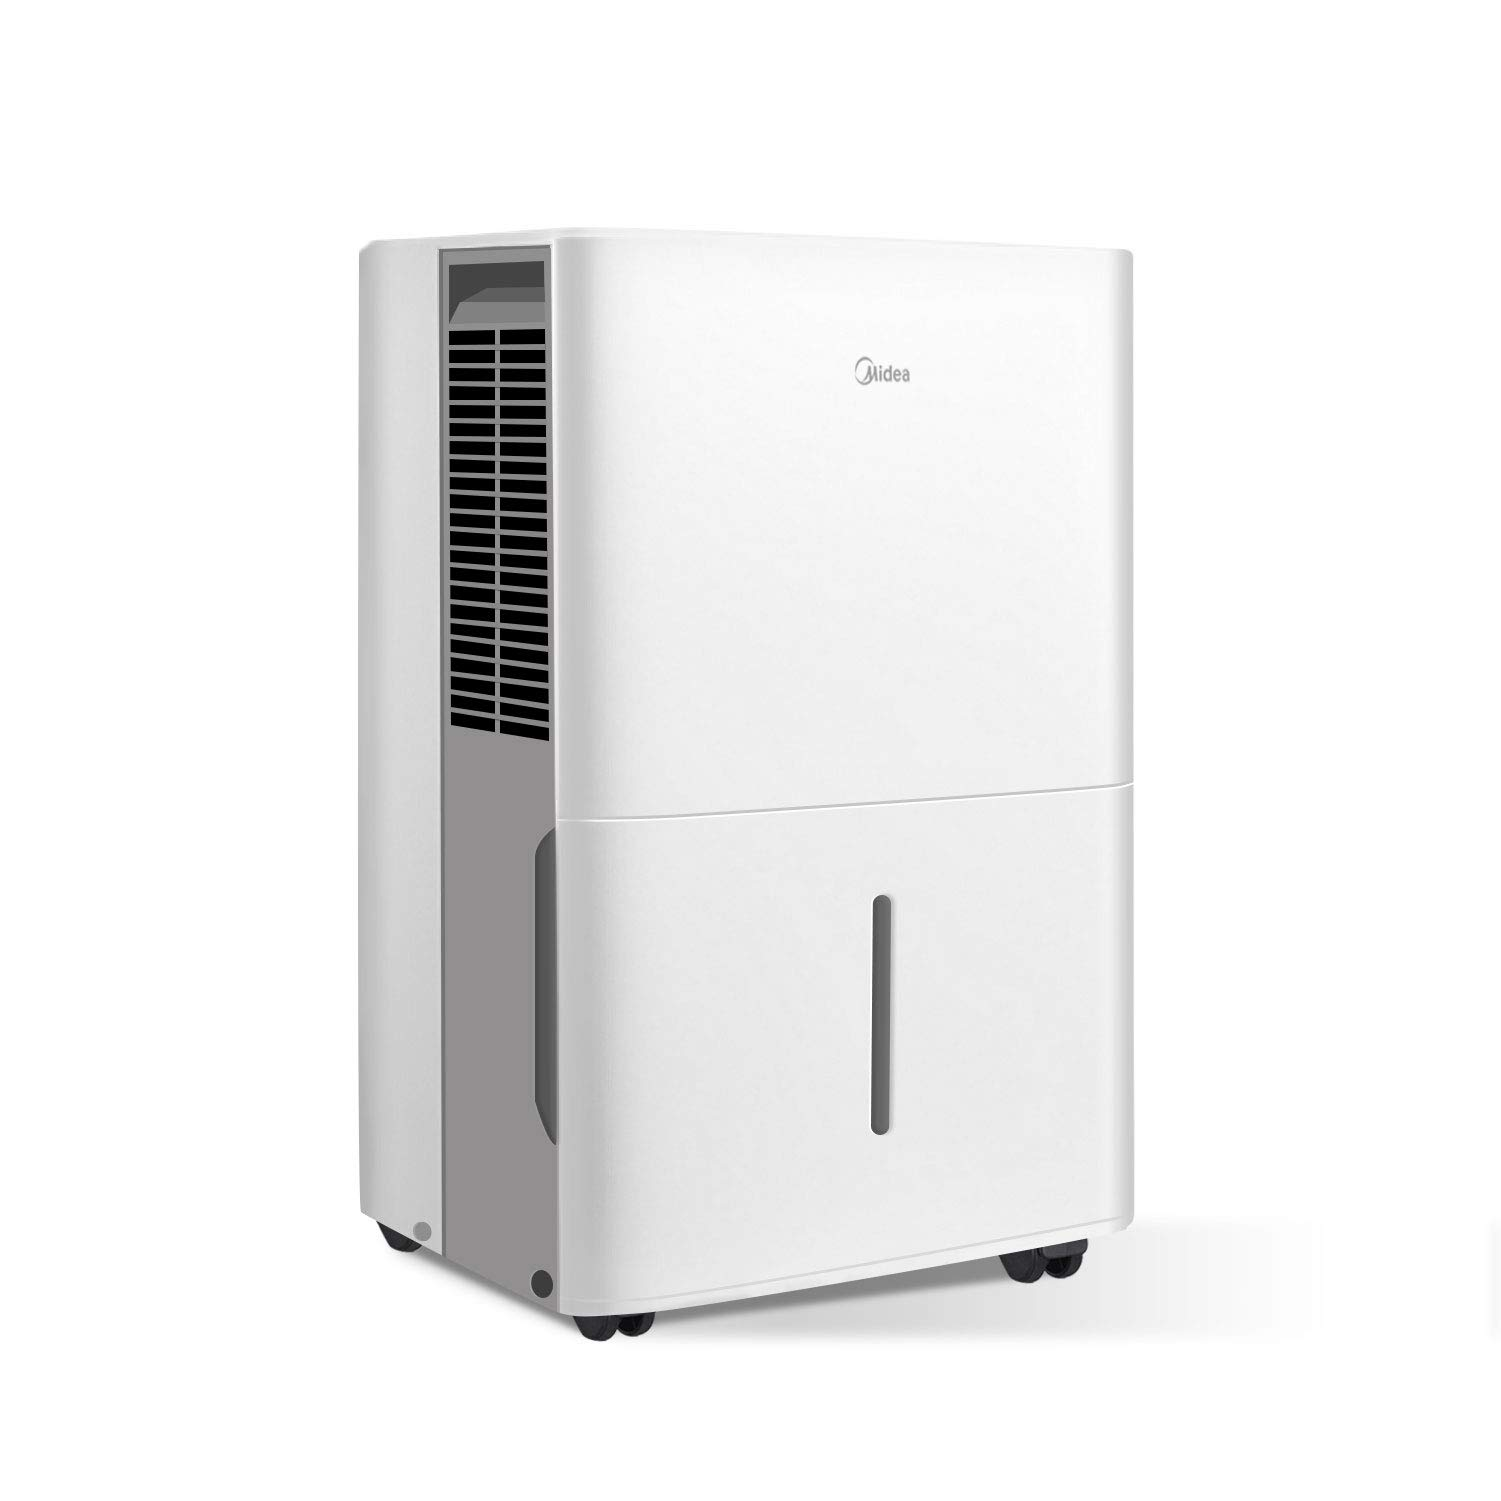 MIDEA MAD30C1YWS Portable Dehumidifier 30 Pint with Reusable Air Filter, Ideal for basements, Bedroom, Bathroom, Pint (20 Pint New DOE), white by MIDEA